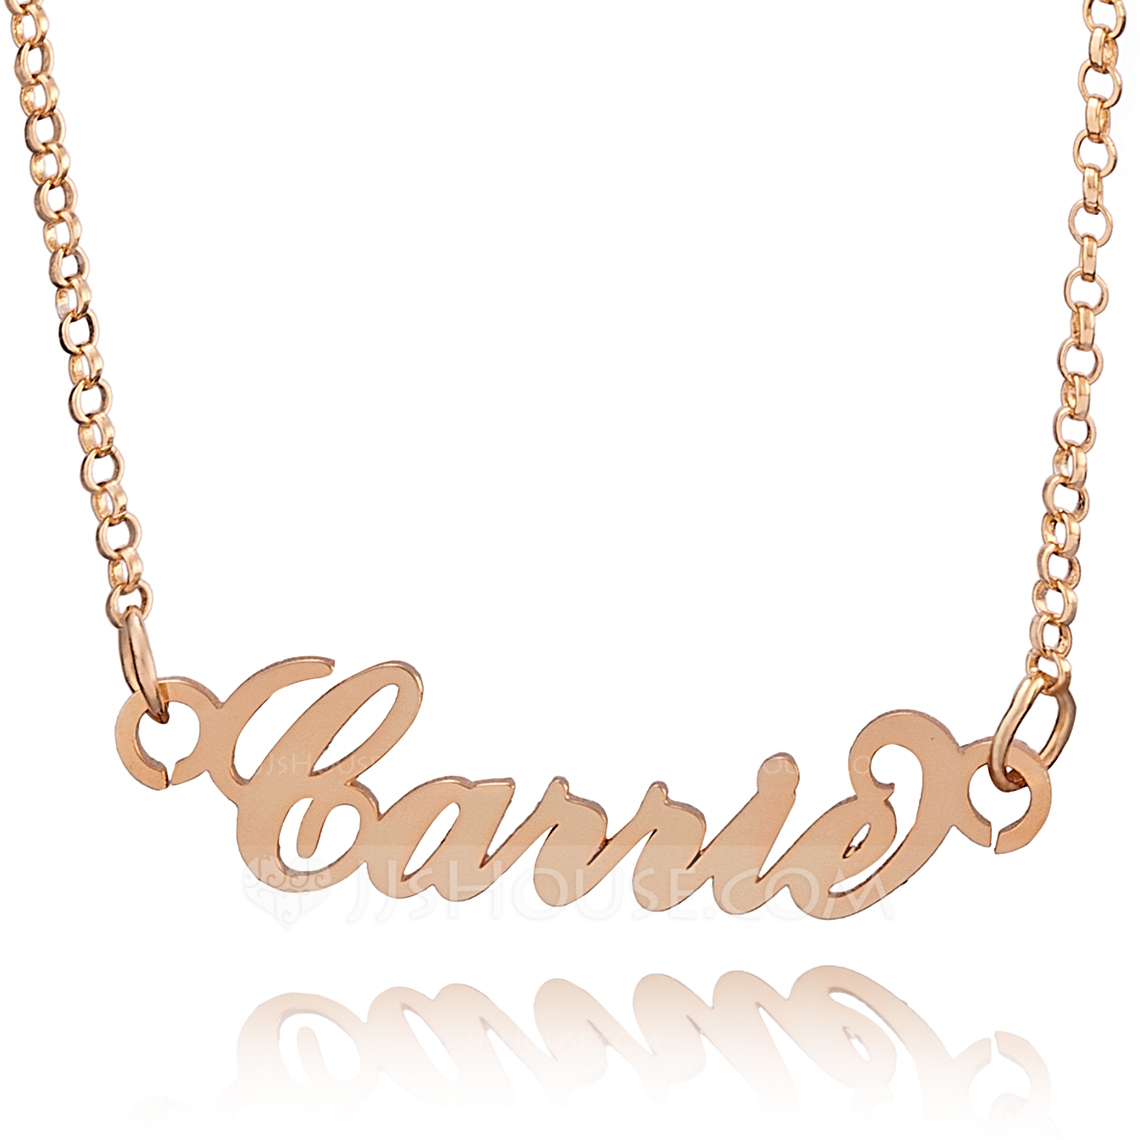 Custom 18k Rose Gold Plated Carrie Name Necklace - Birthday Gifts Mother's Day Gifts